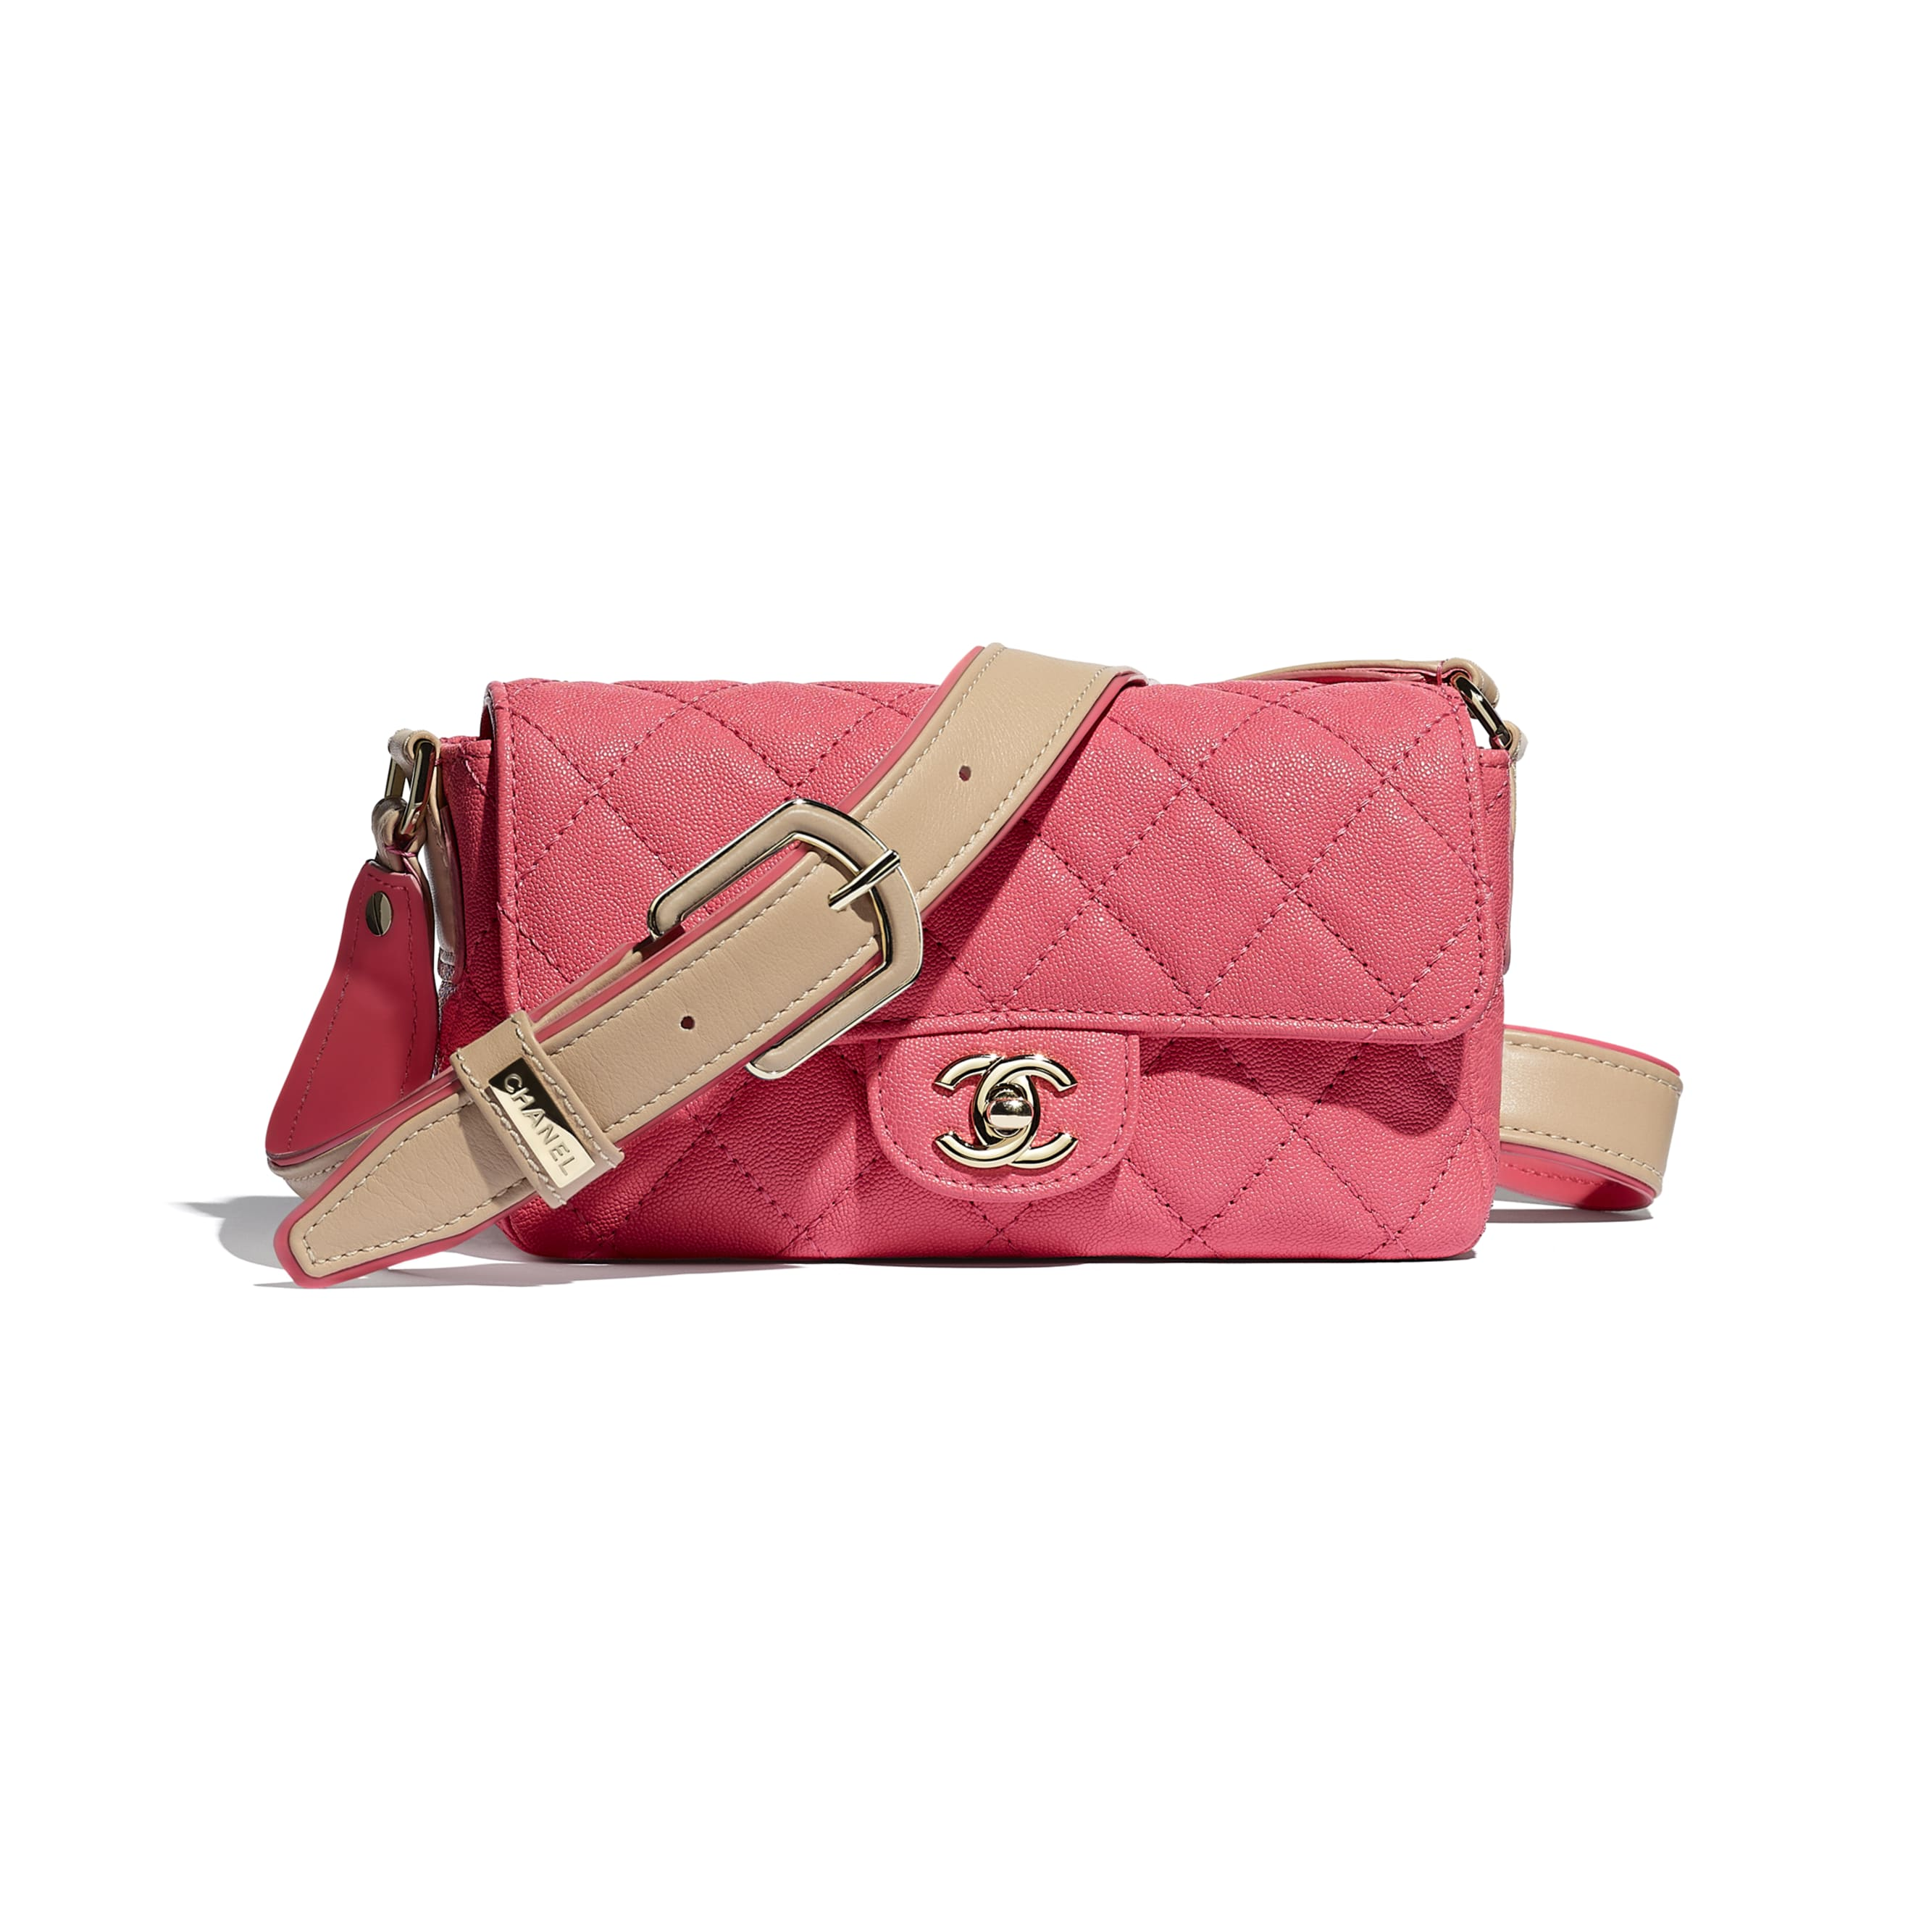 Flap Bag - Coral - Grained Calfskin, Smooth Calfskin & Gold-Tone Metal - CHANEL - Default view - see standard sized version